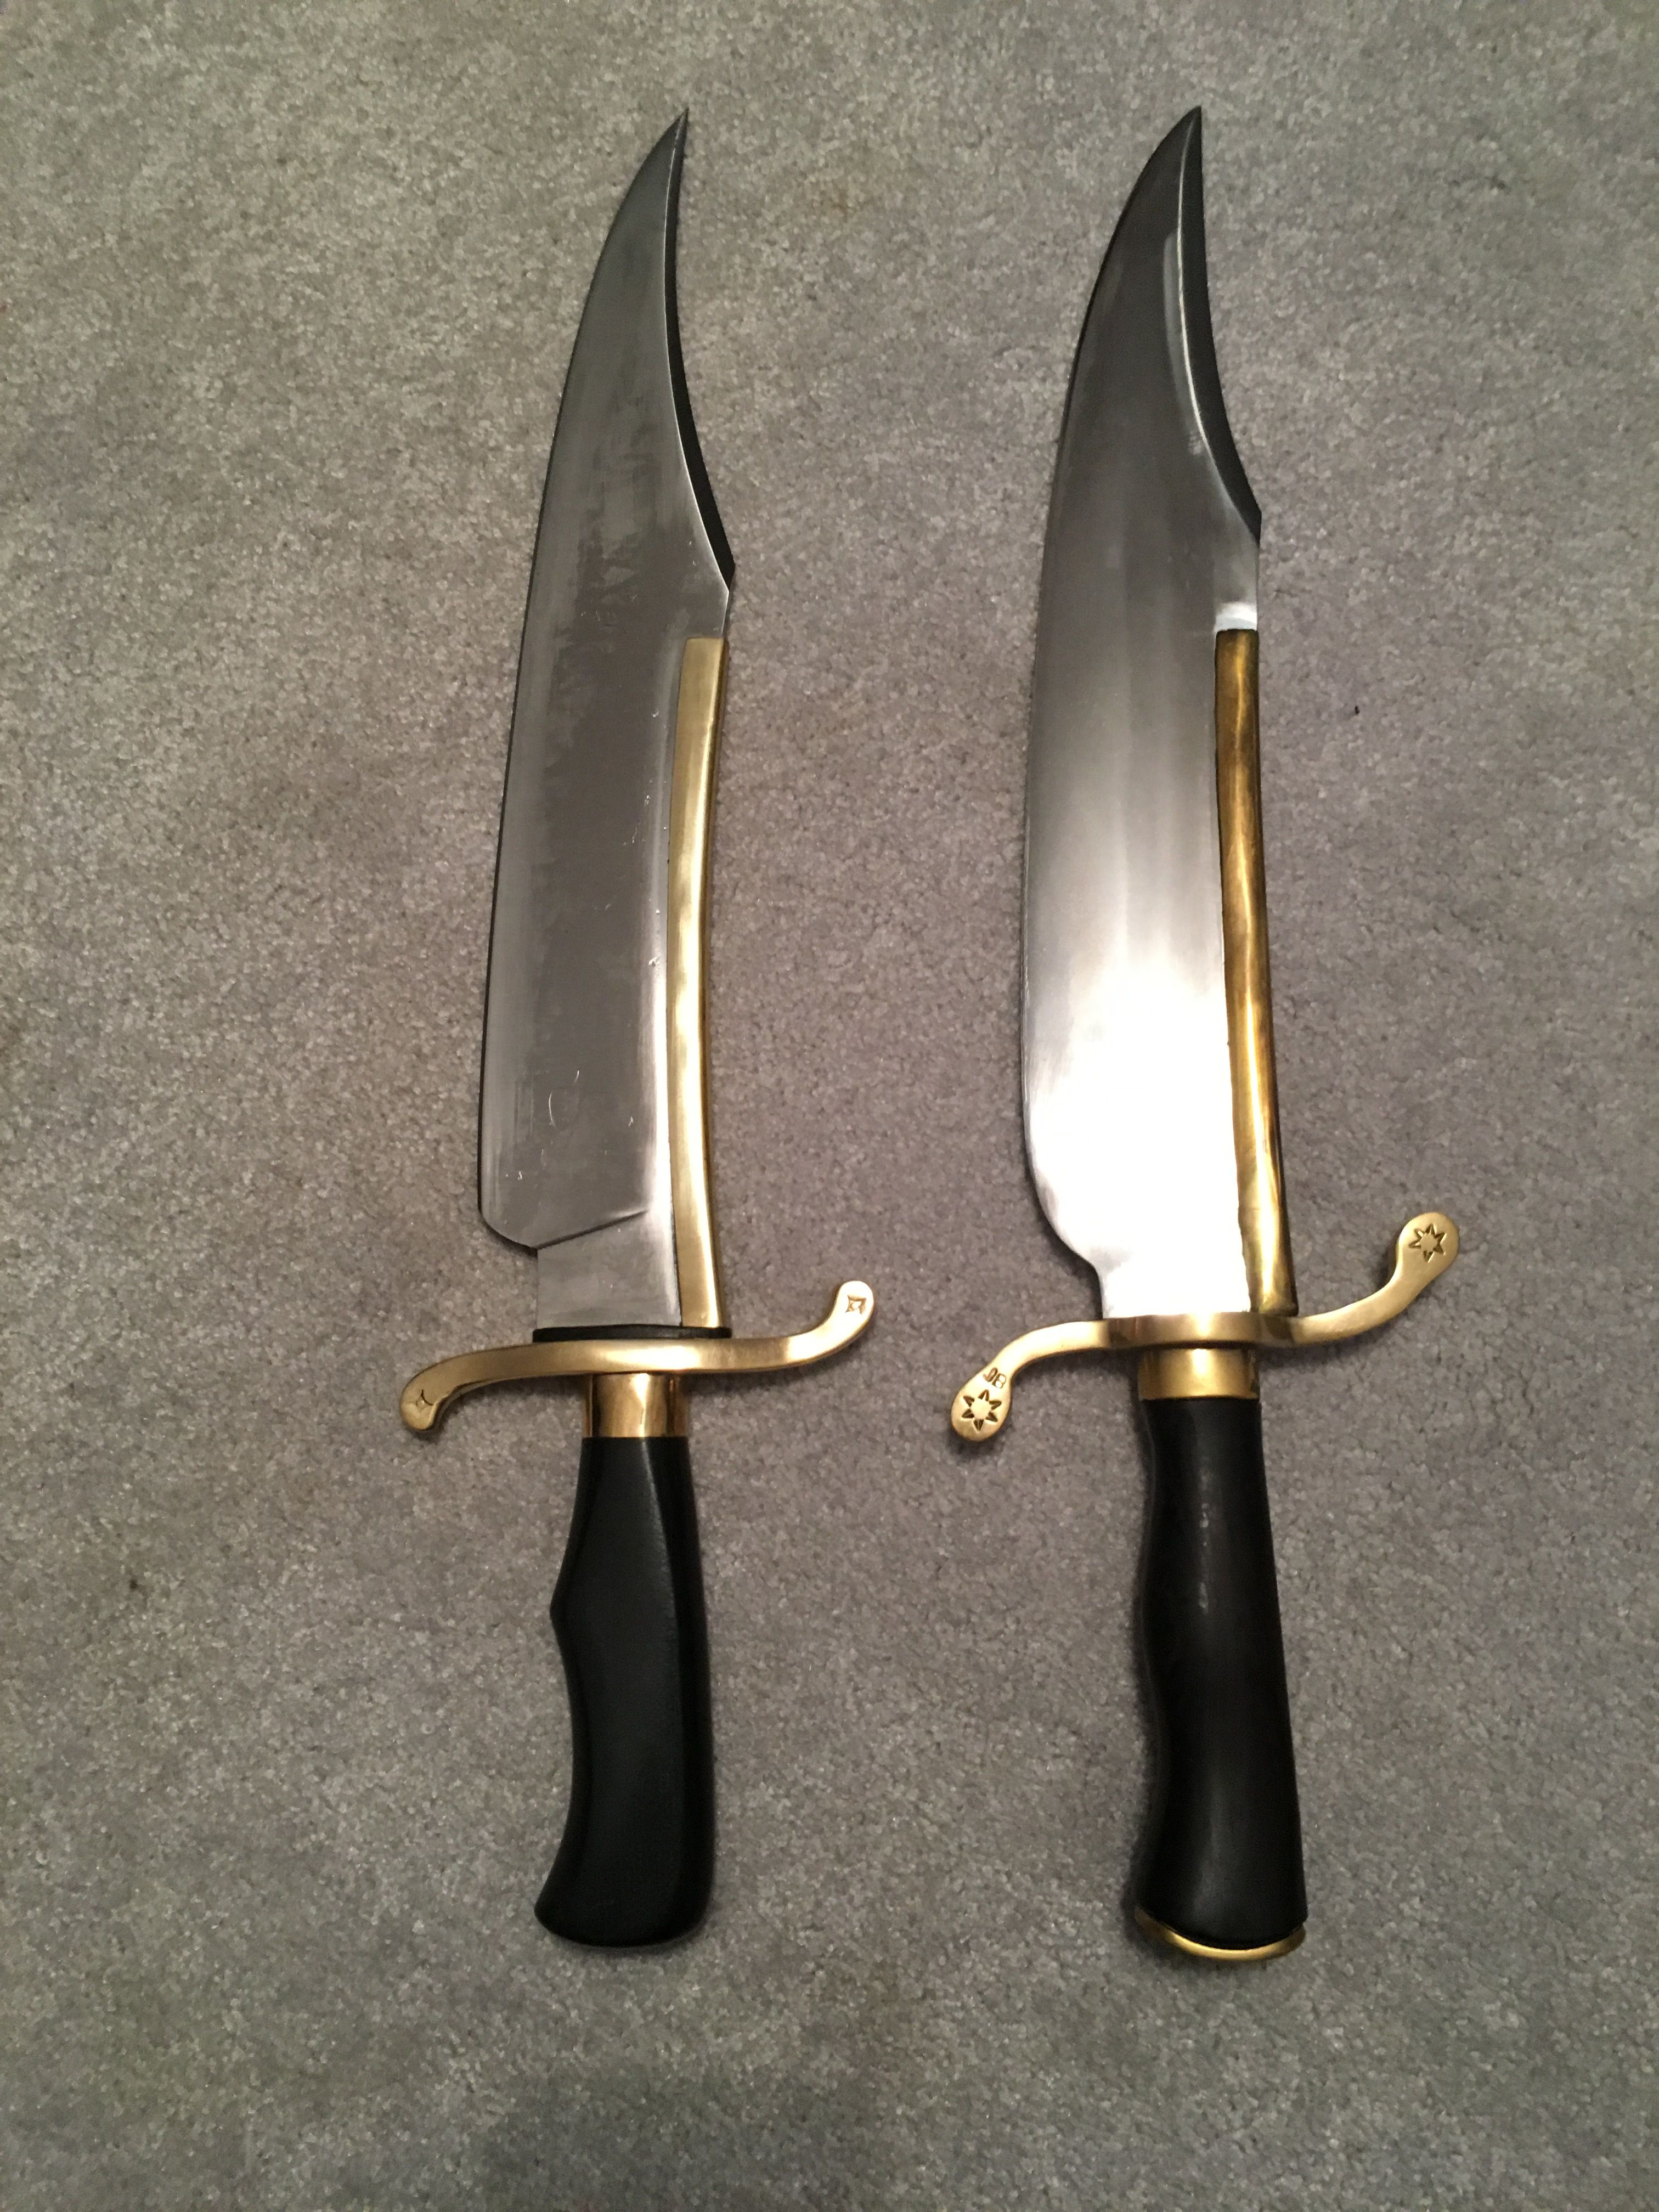 Ursa Musso Bowie Left Pakistan Legacy Arms Musso Bowie Right Philippines Both Are 5160 Steel The Ursa I Bowie Knife Knives And Swords Custom Knives